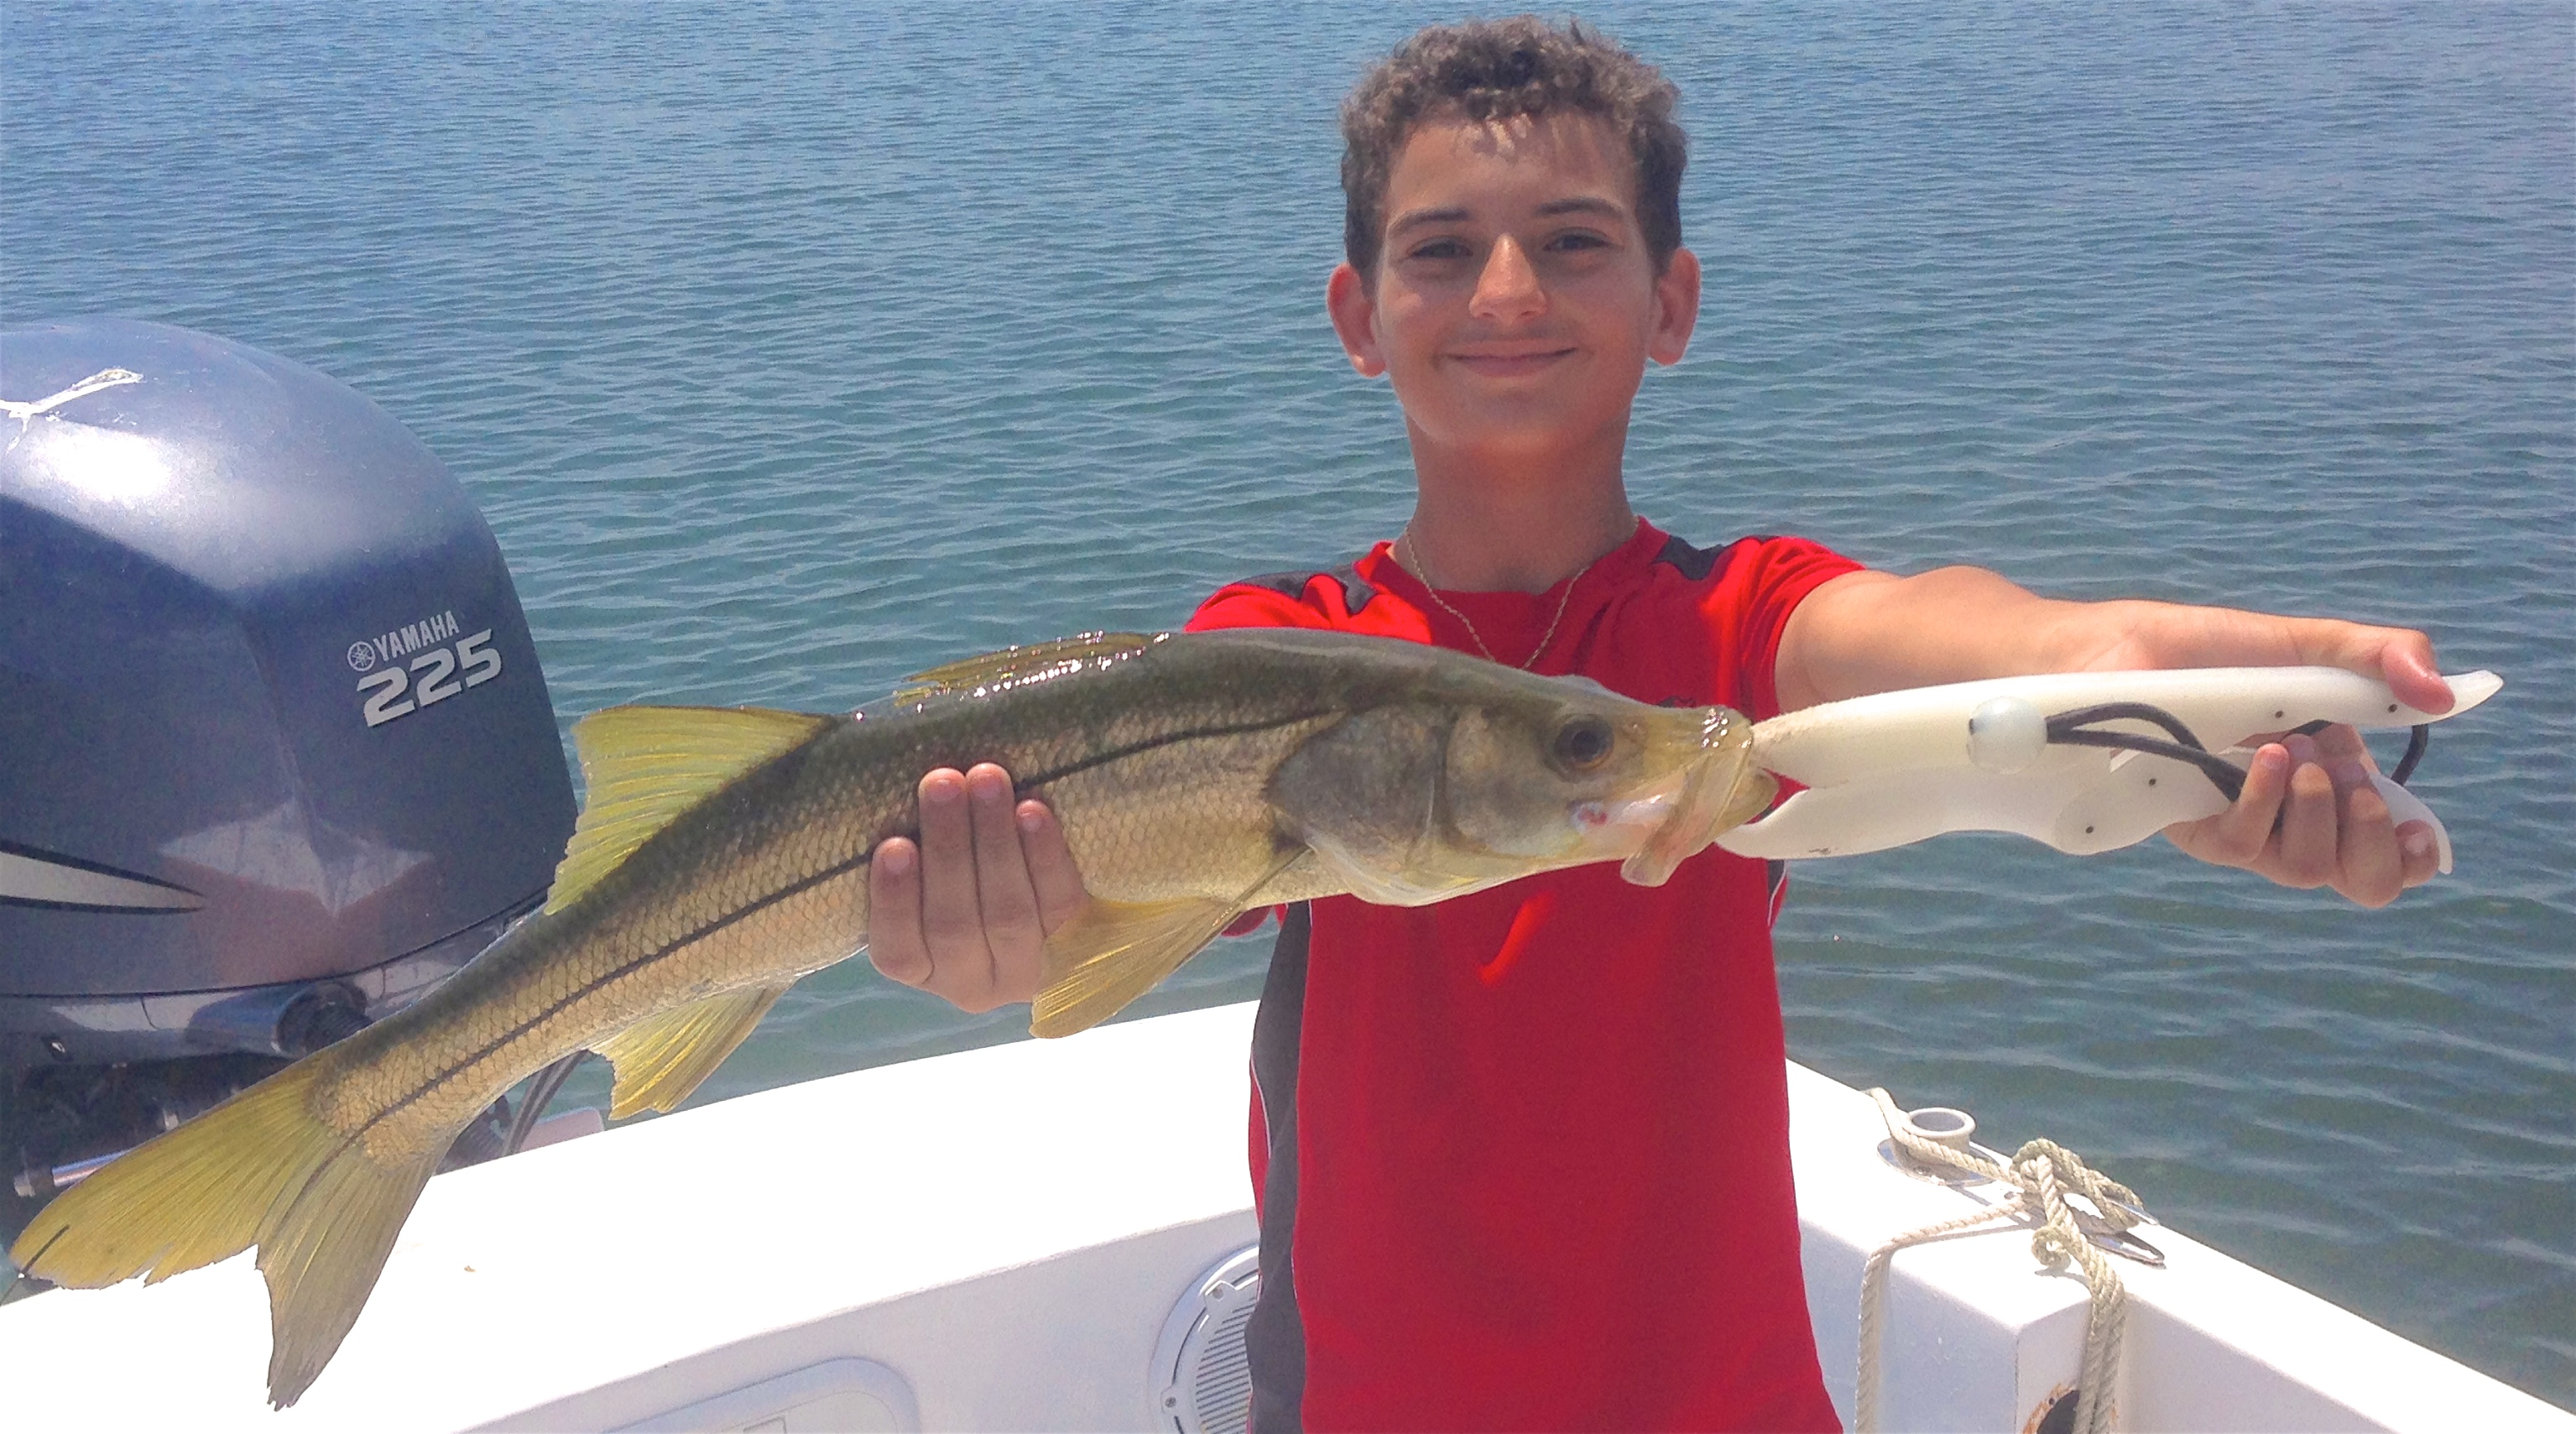 St petersburg tampa bay fishing charters autos post for Tampa florida fishing charters